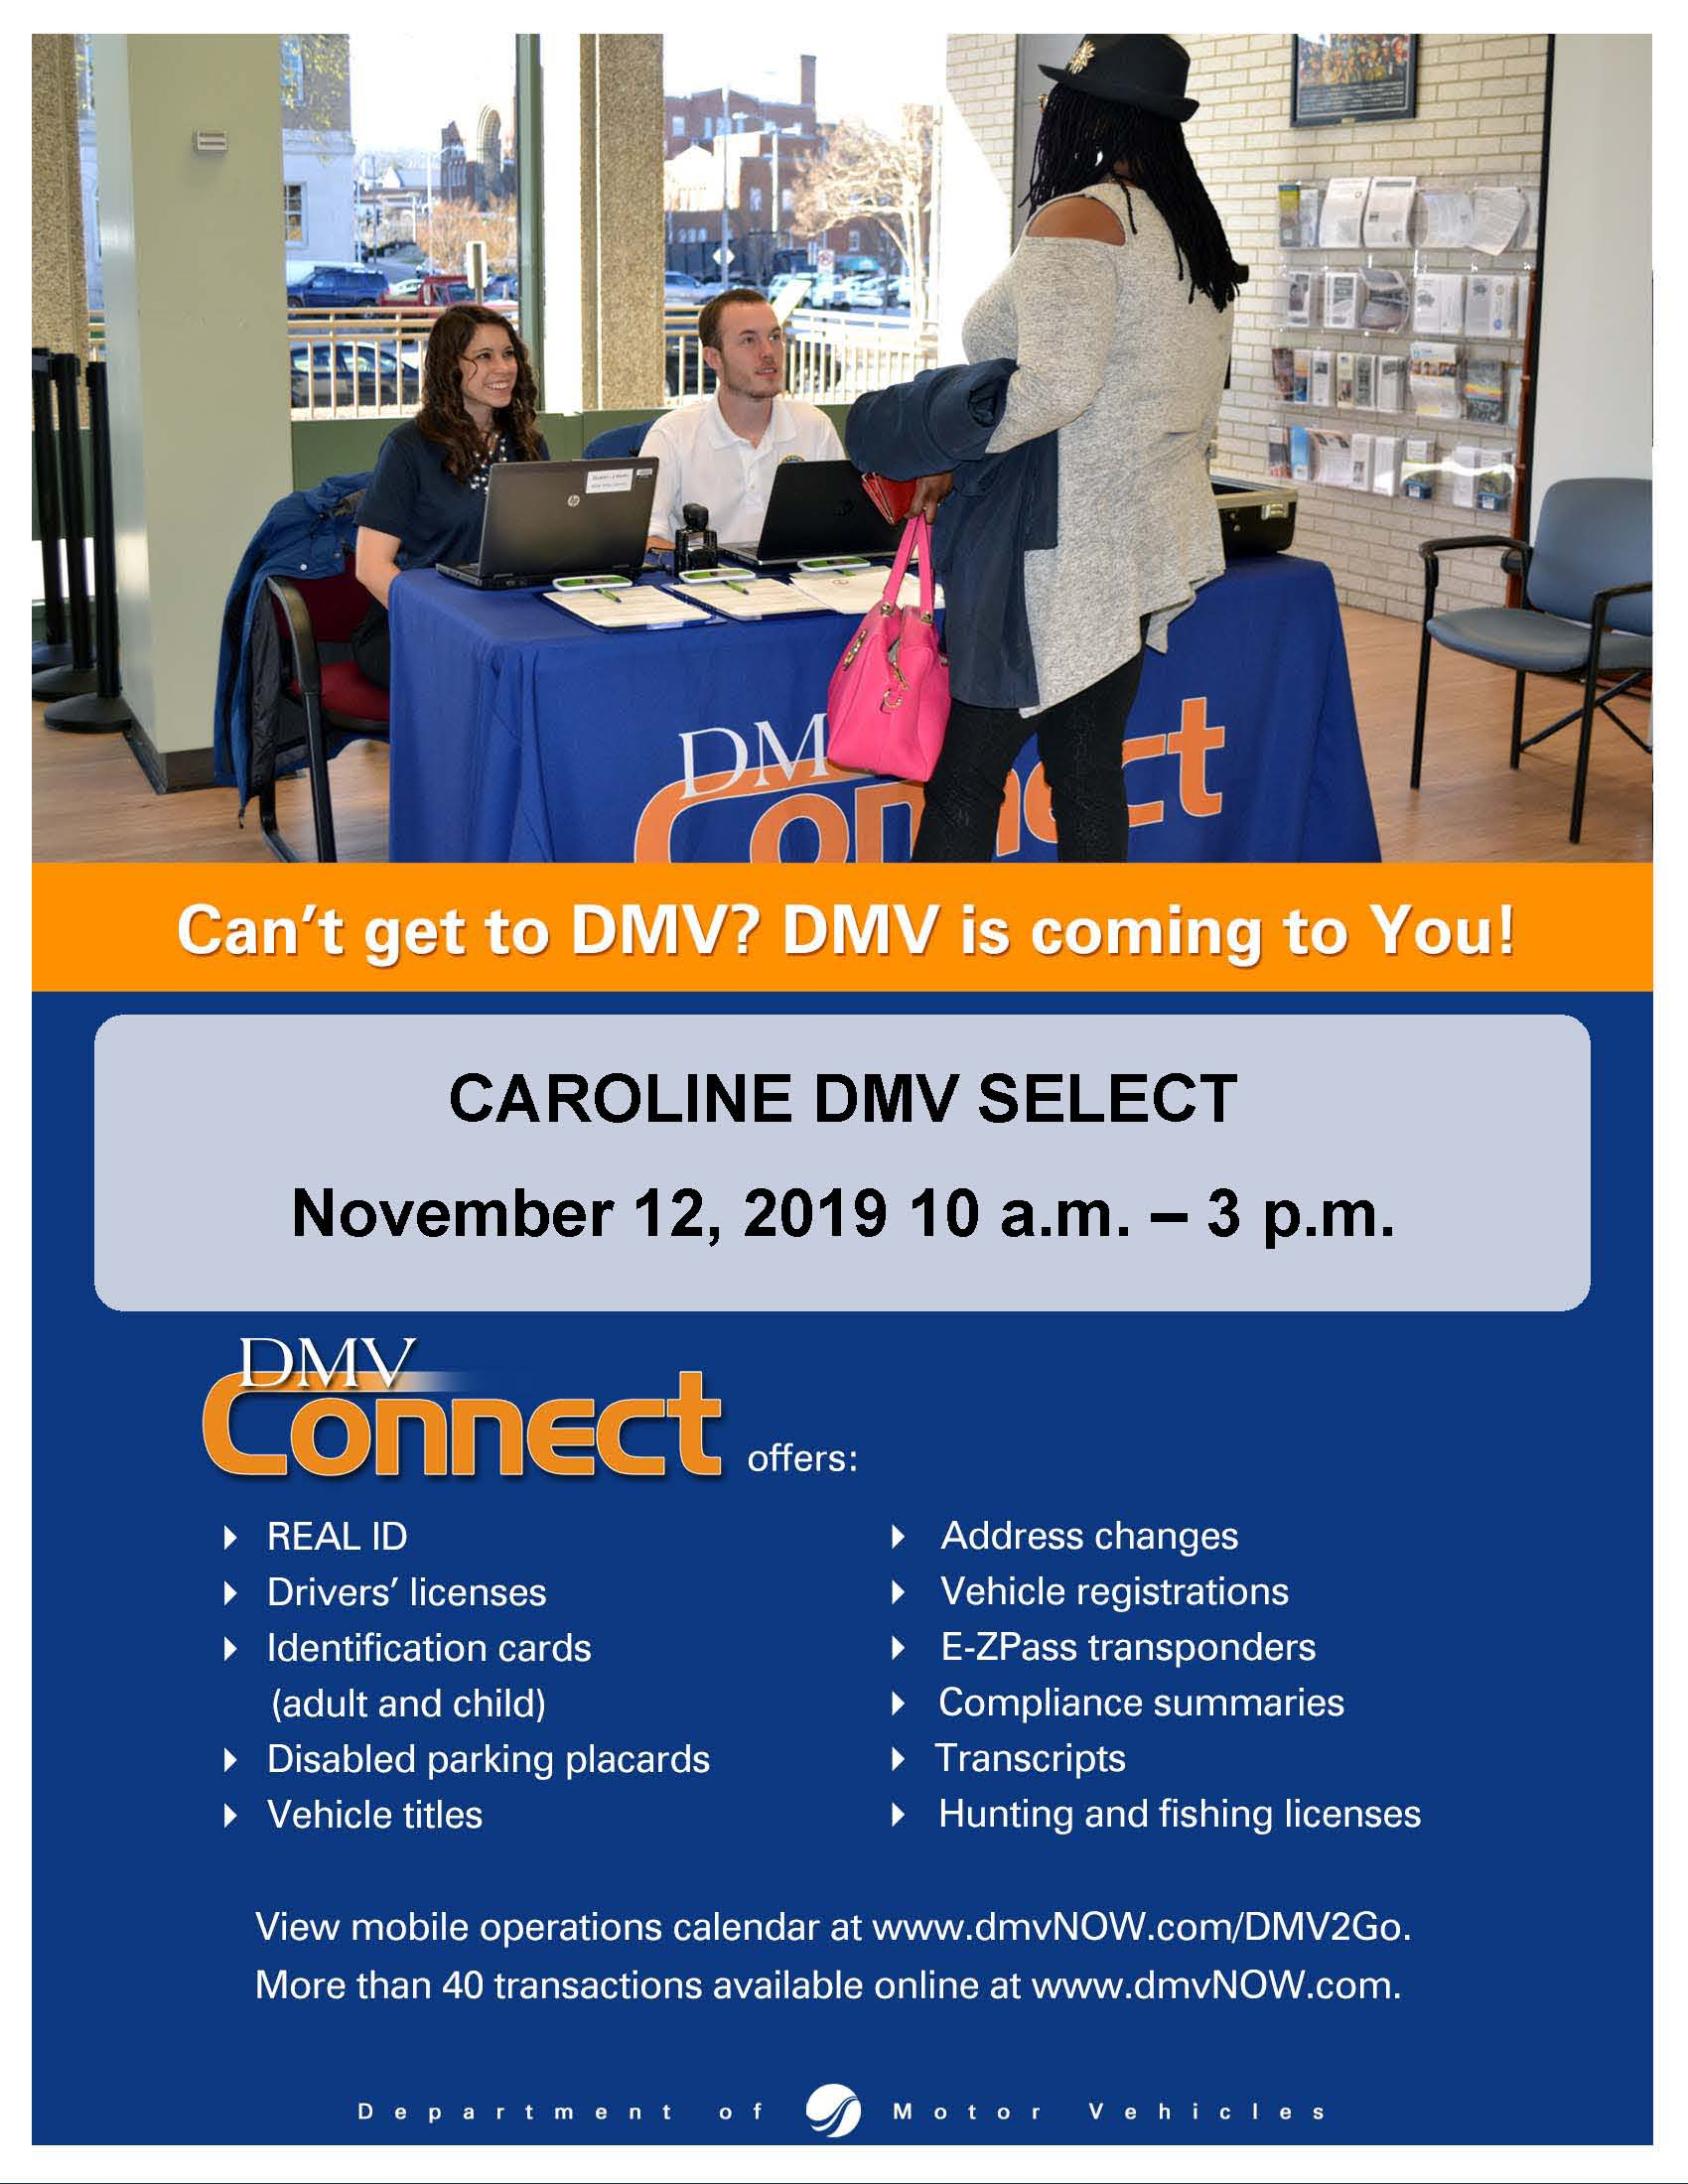 DMV Connect November 12, 2019 Flyer